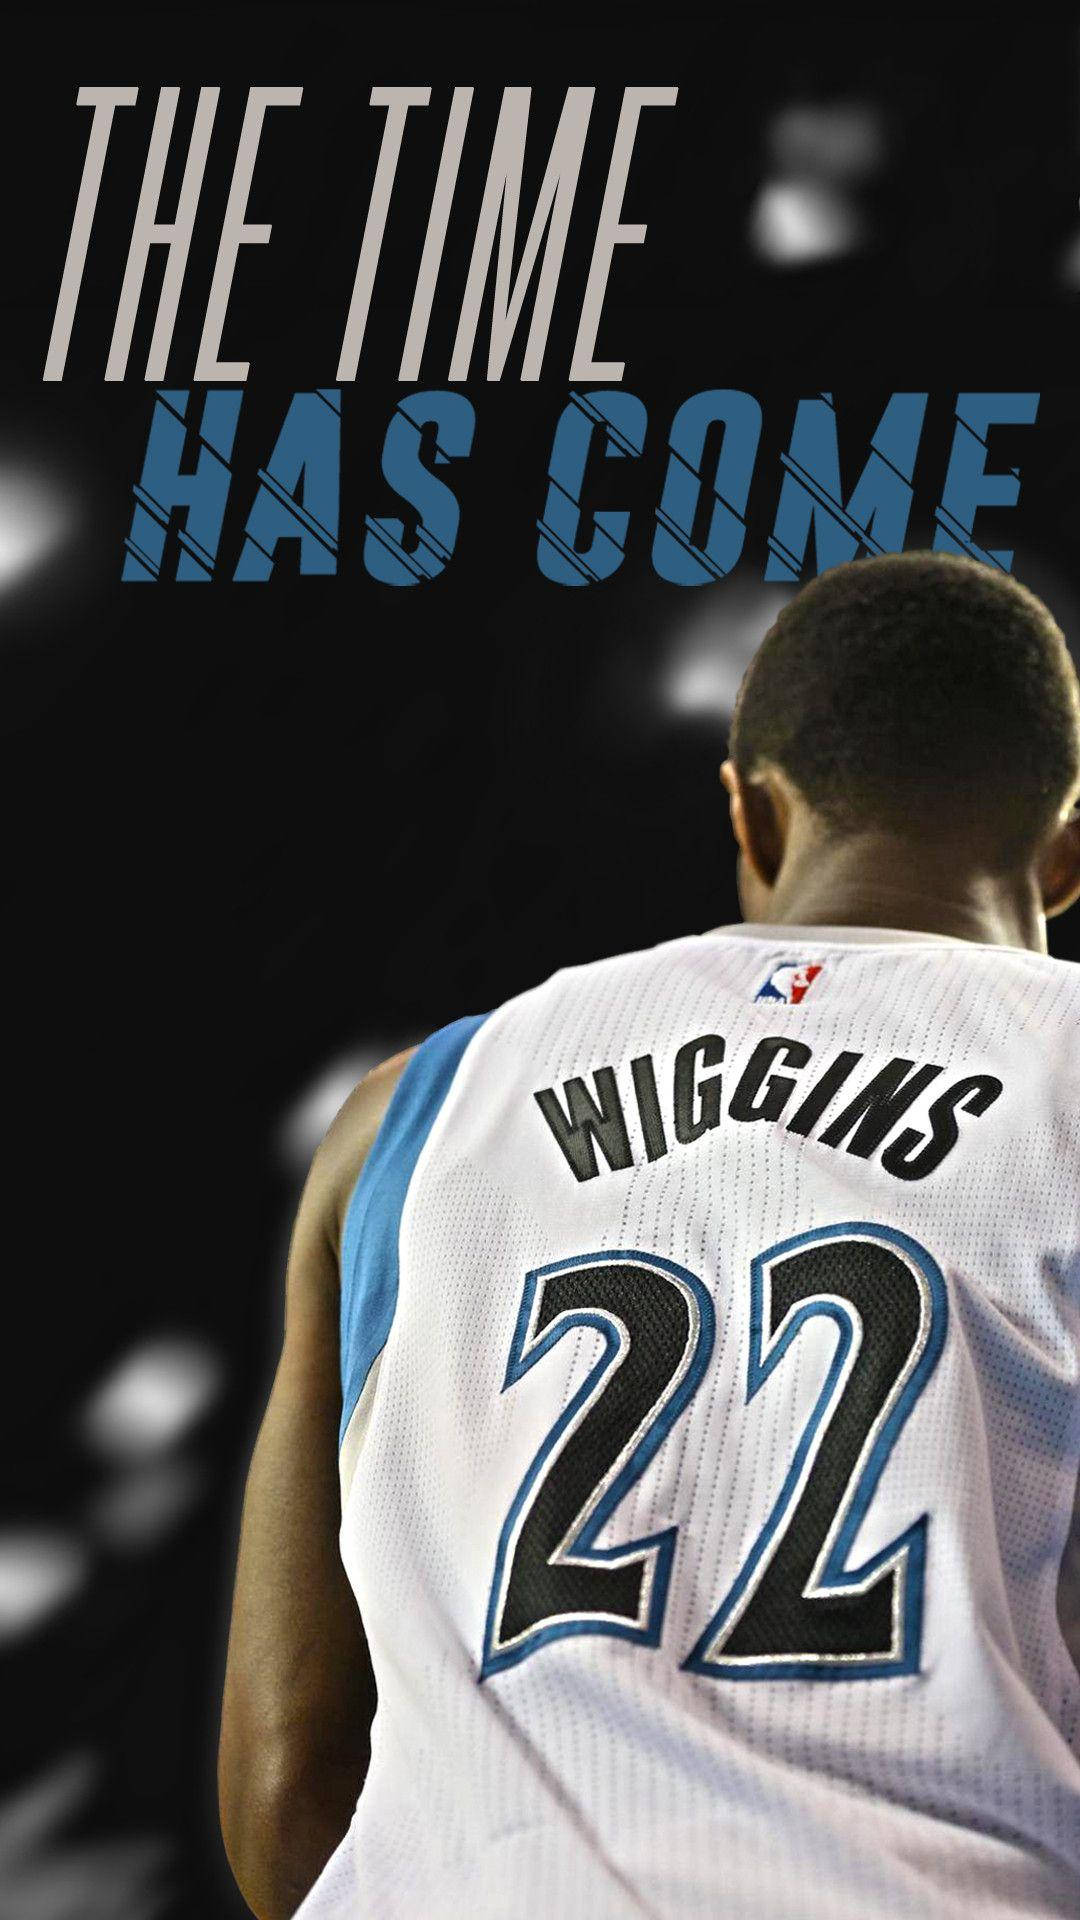 I made an Andrew Wiggins phone wallpaper! Let me know what you